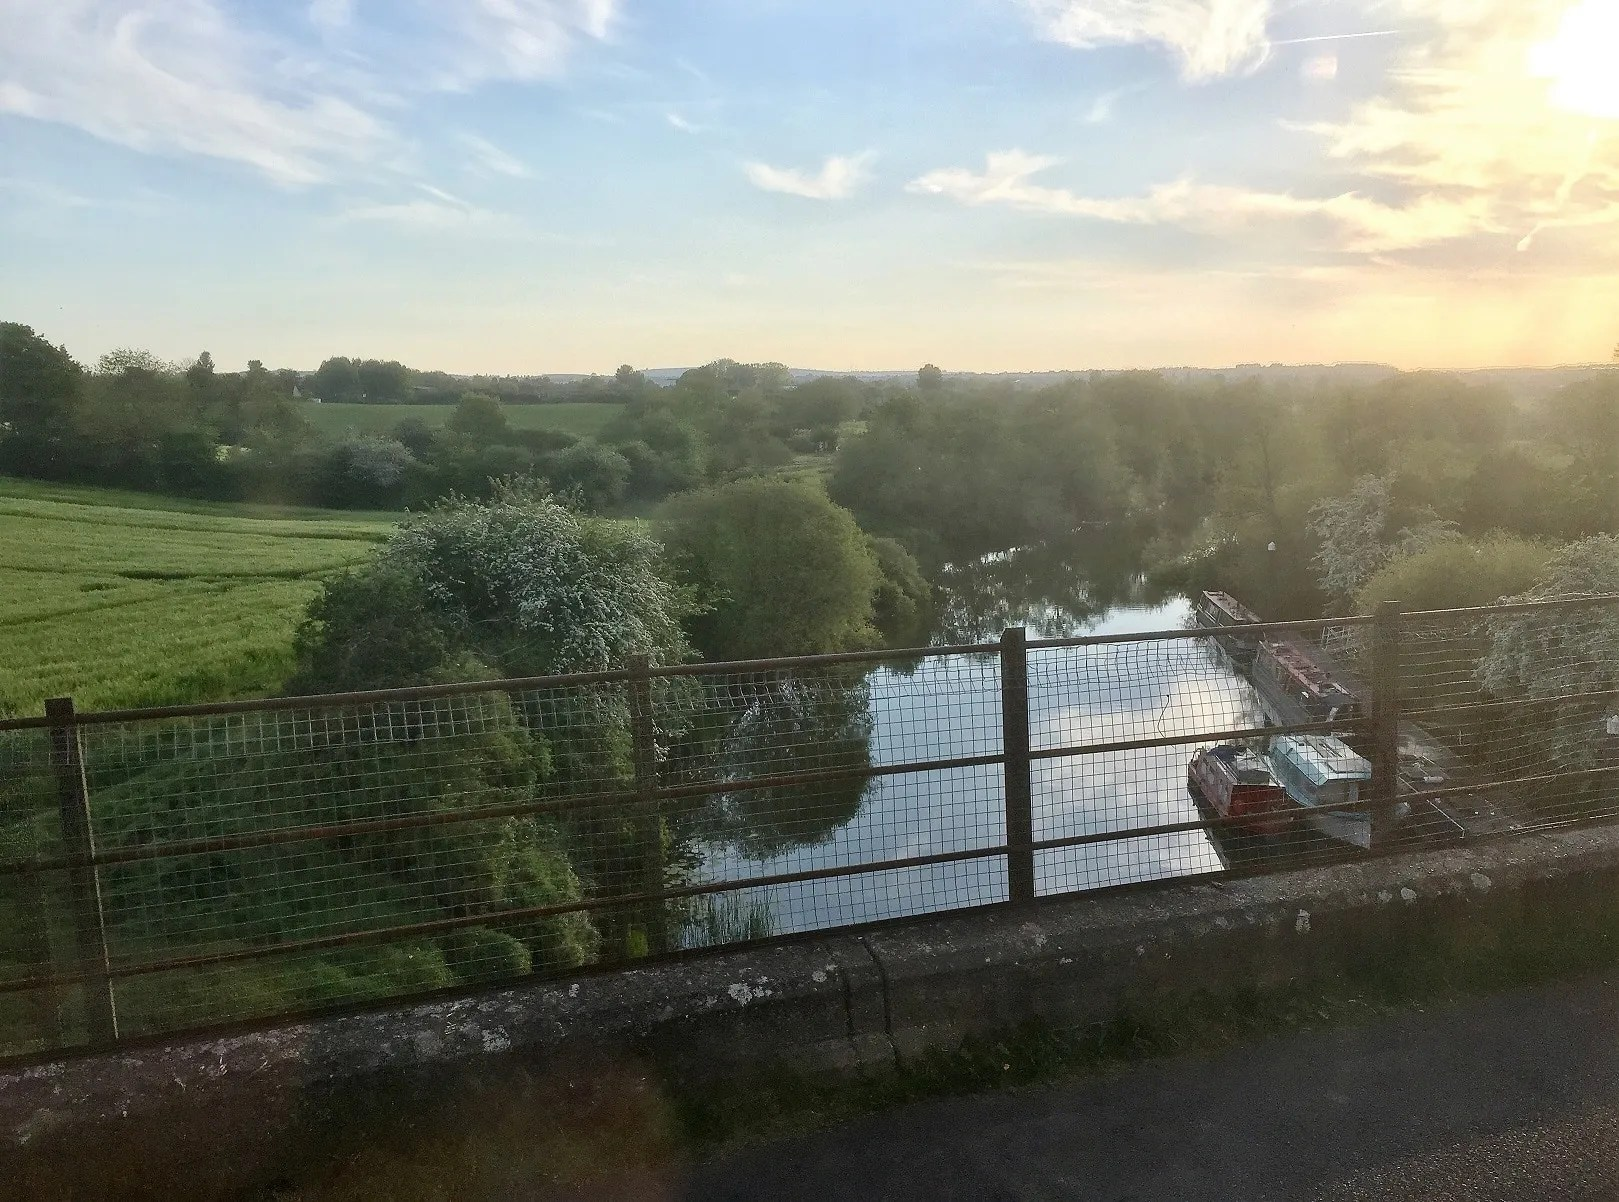 View from the Avon Valley Railway of the River Avon